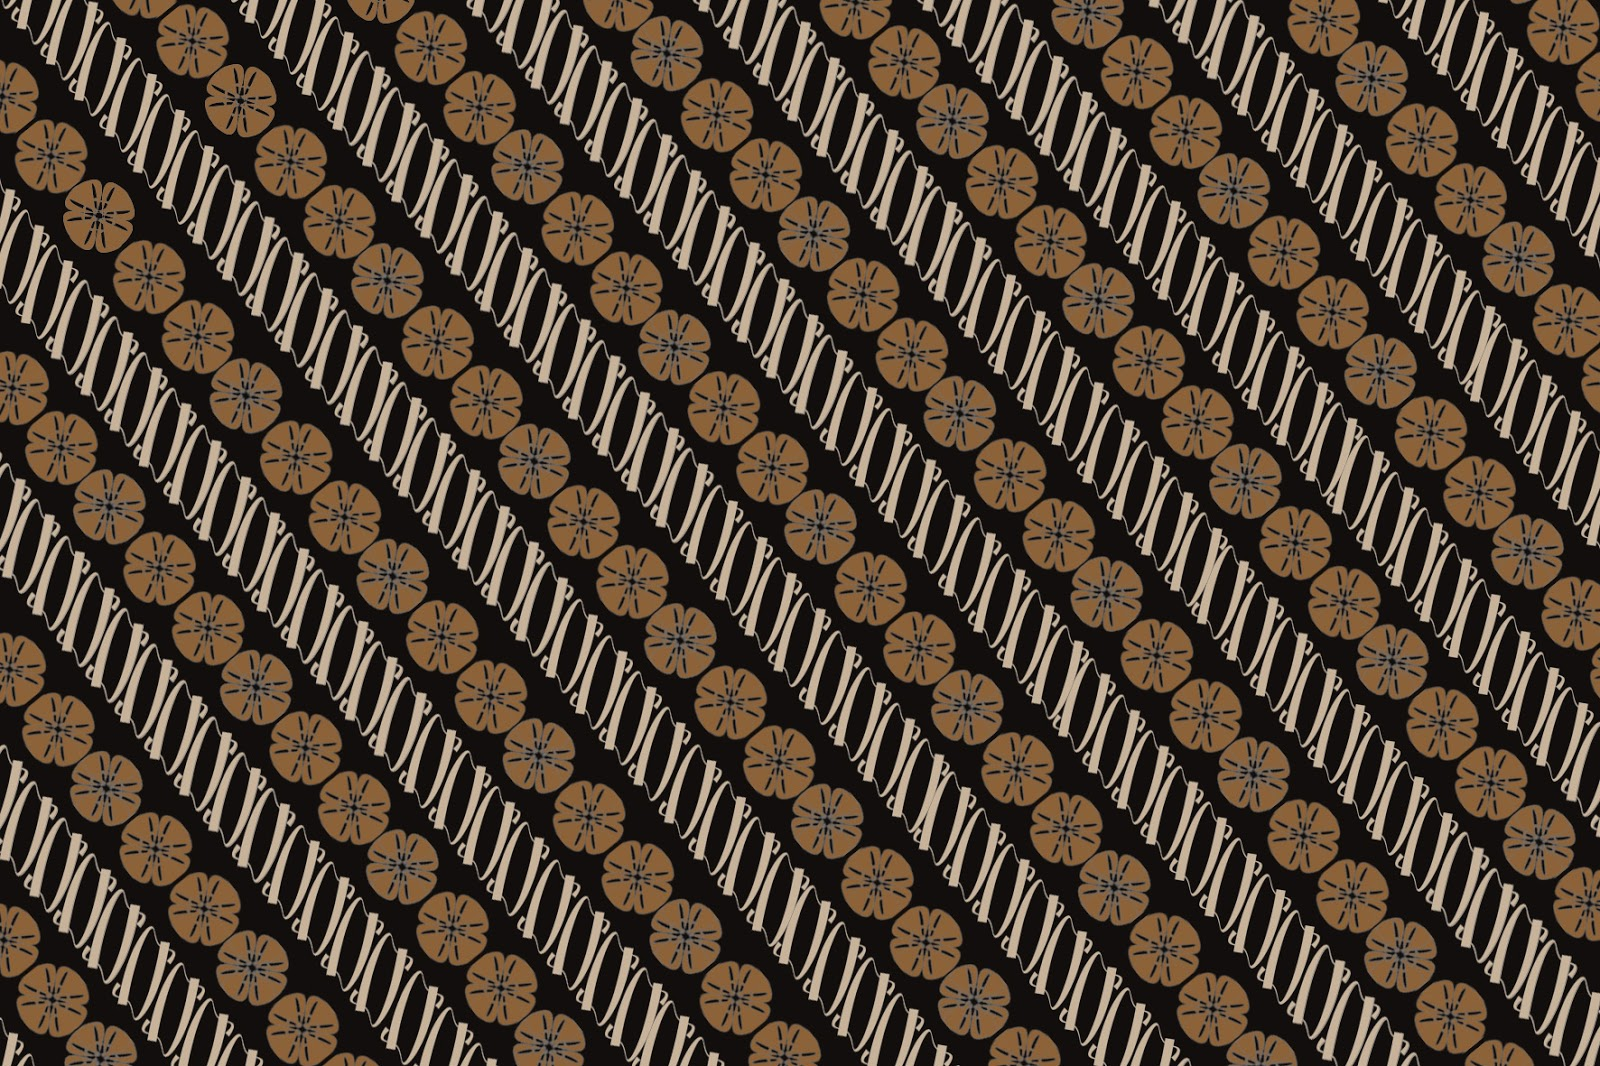 Download 6400 Background Hitam Batik HD Paling Keren